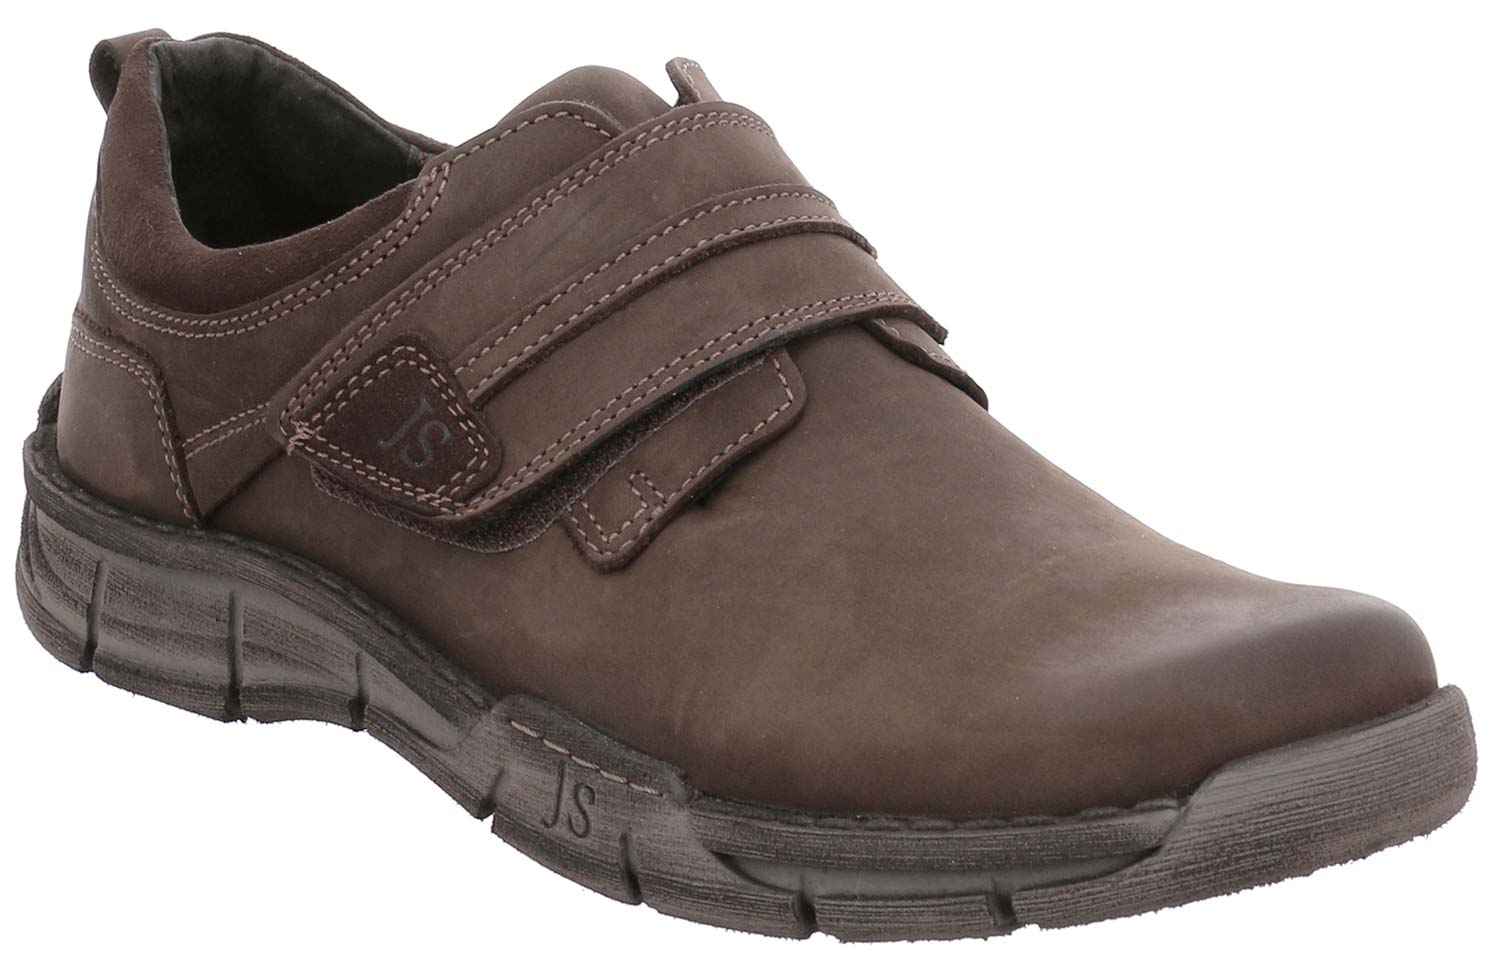 Josef Seibel Willow Men's shoes Slippers Leisure 14145994 330 Brown New